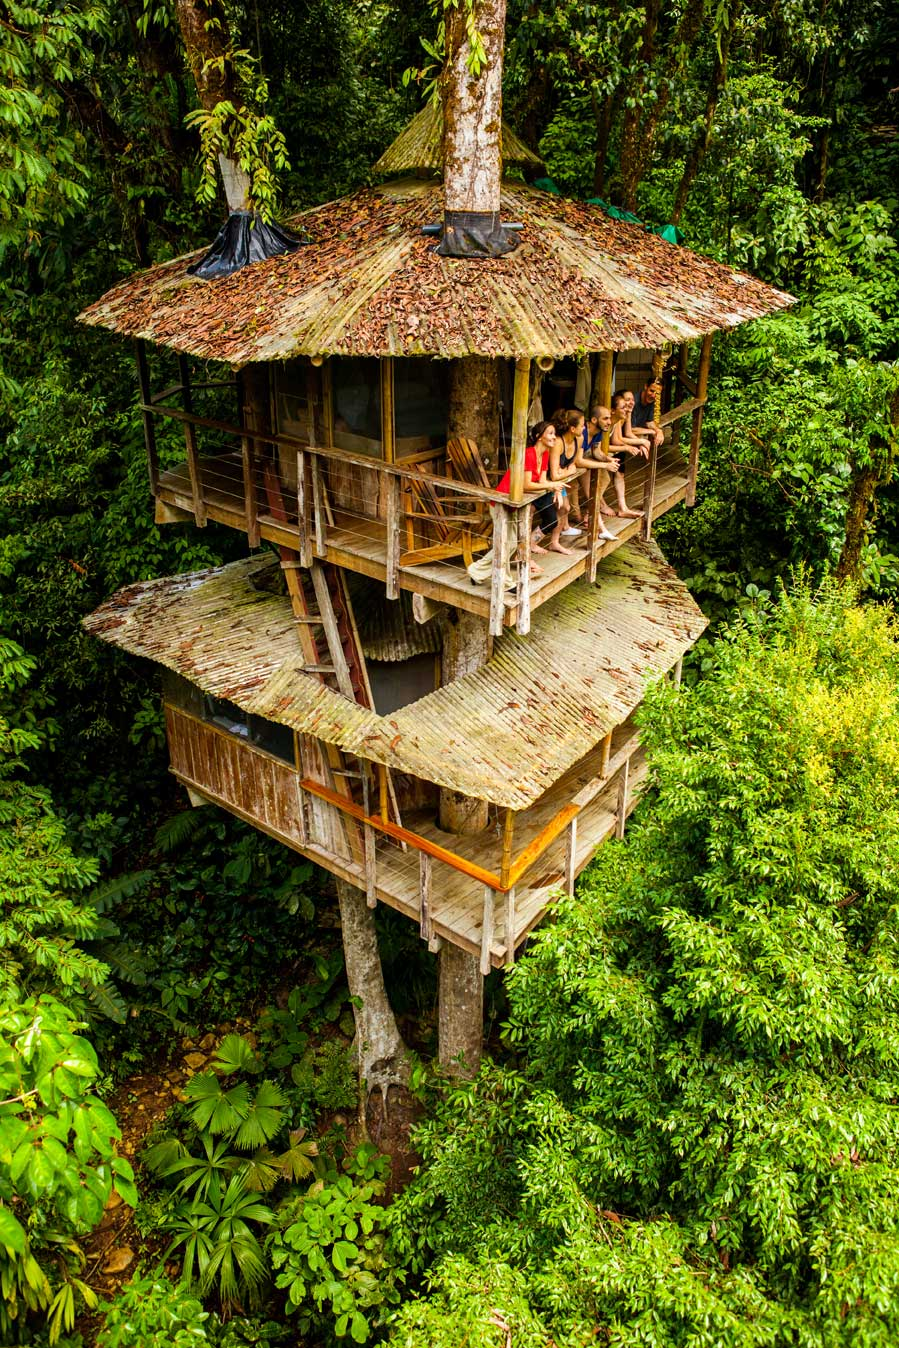 Tree House Community: A group standing on the balcony of the second storey of a treehouse nestled in lush treetops